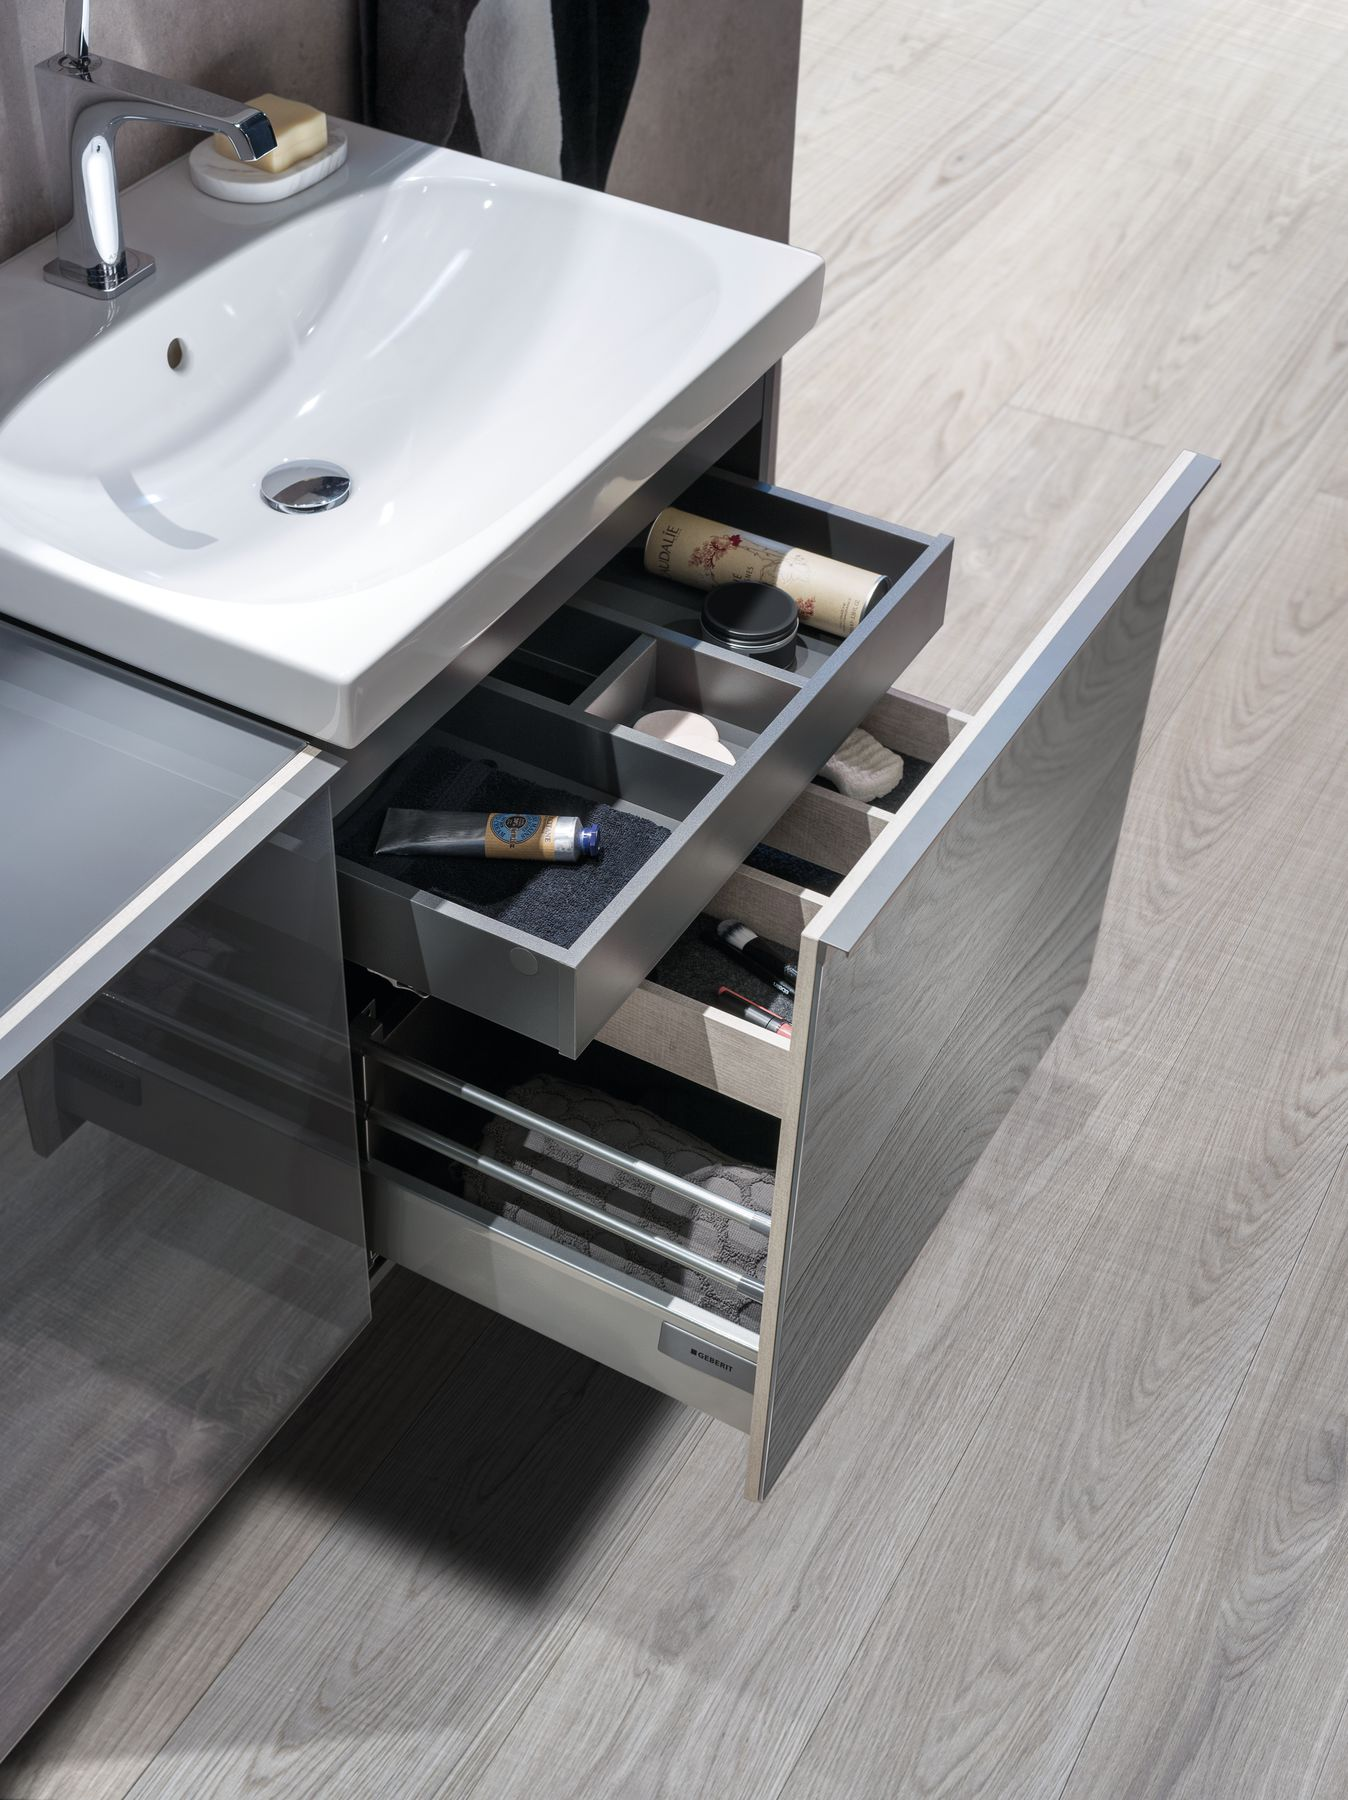 2017 Acanto D washbasin and open drawer.tif_bigview.jpg